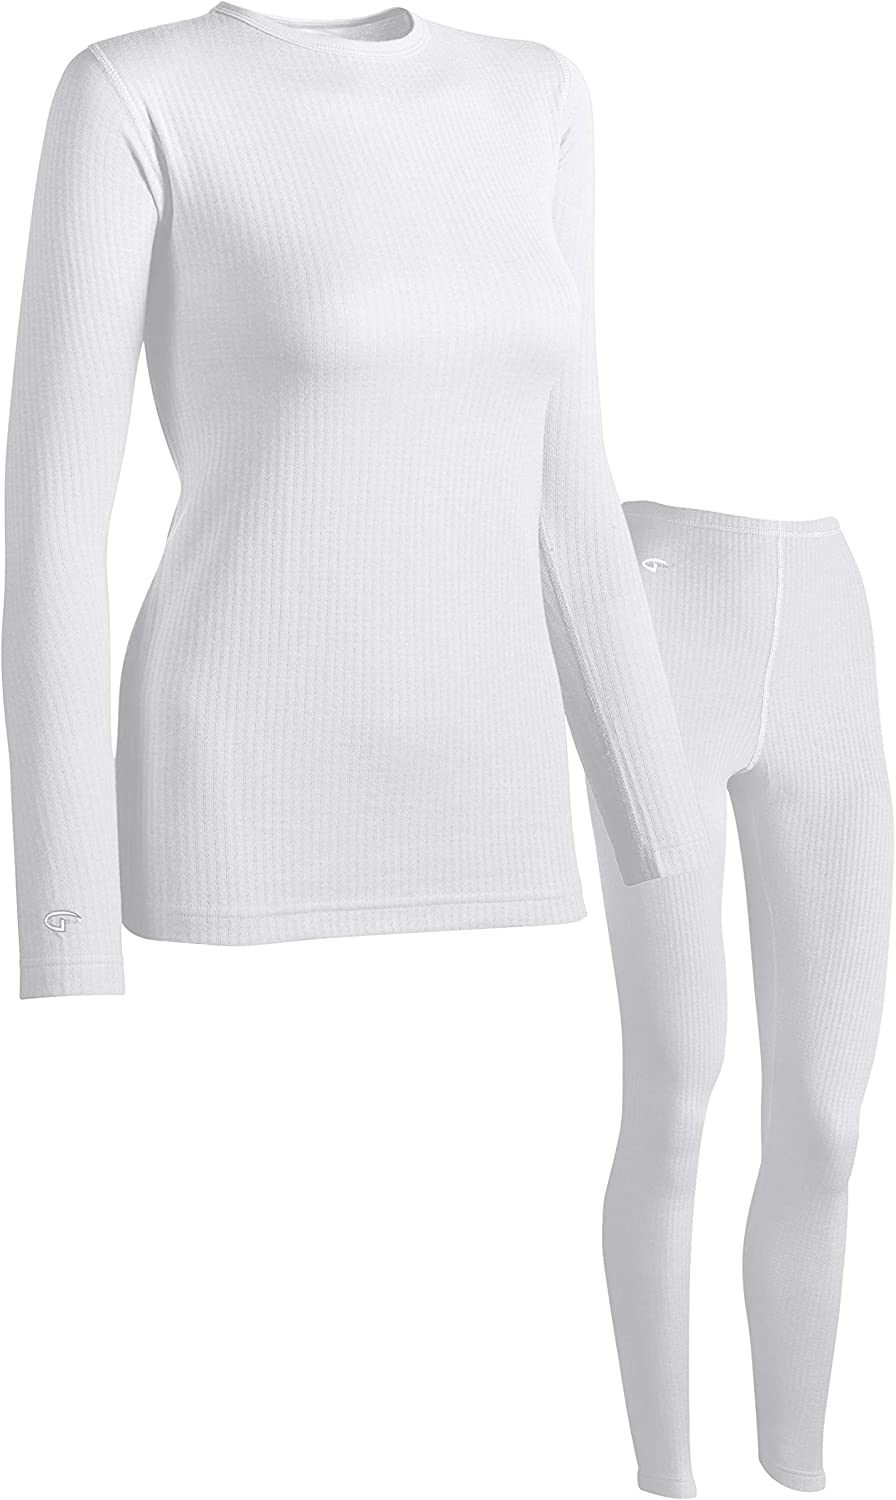 Womens Long Johns Base Layer Thermal top and Leggings Underwear Set